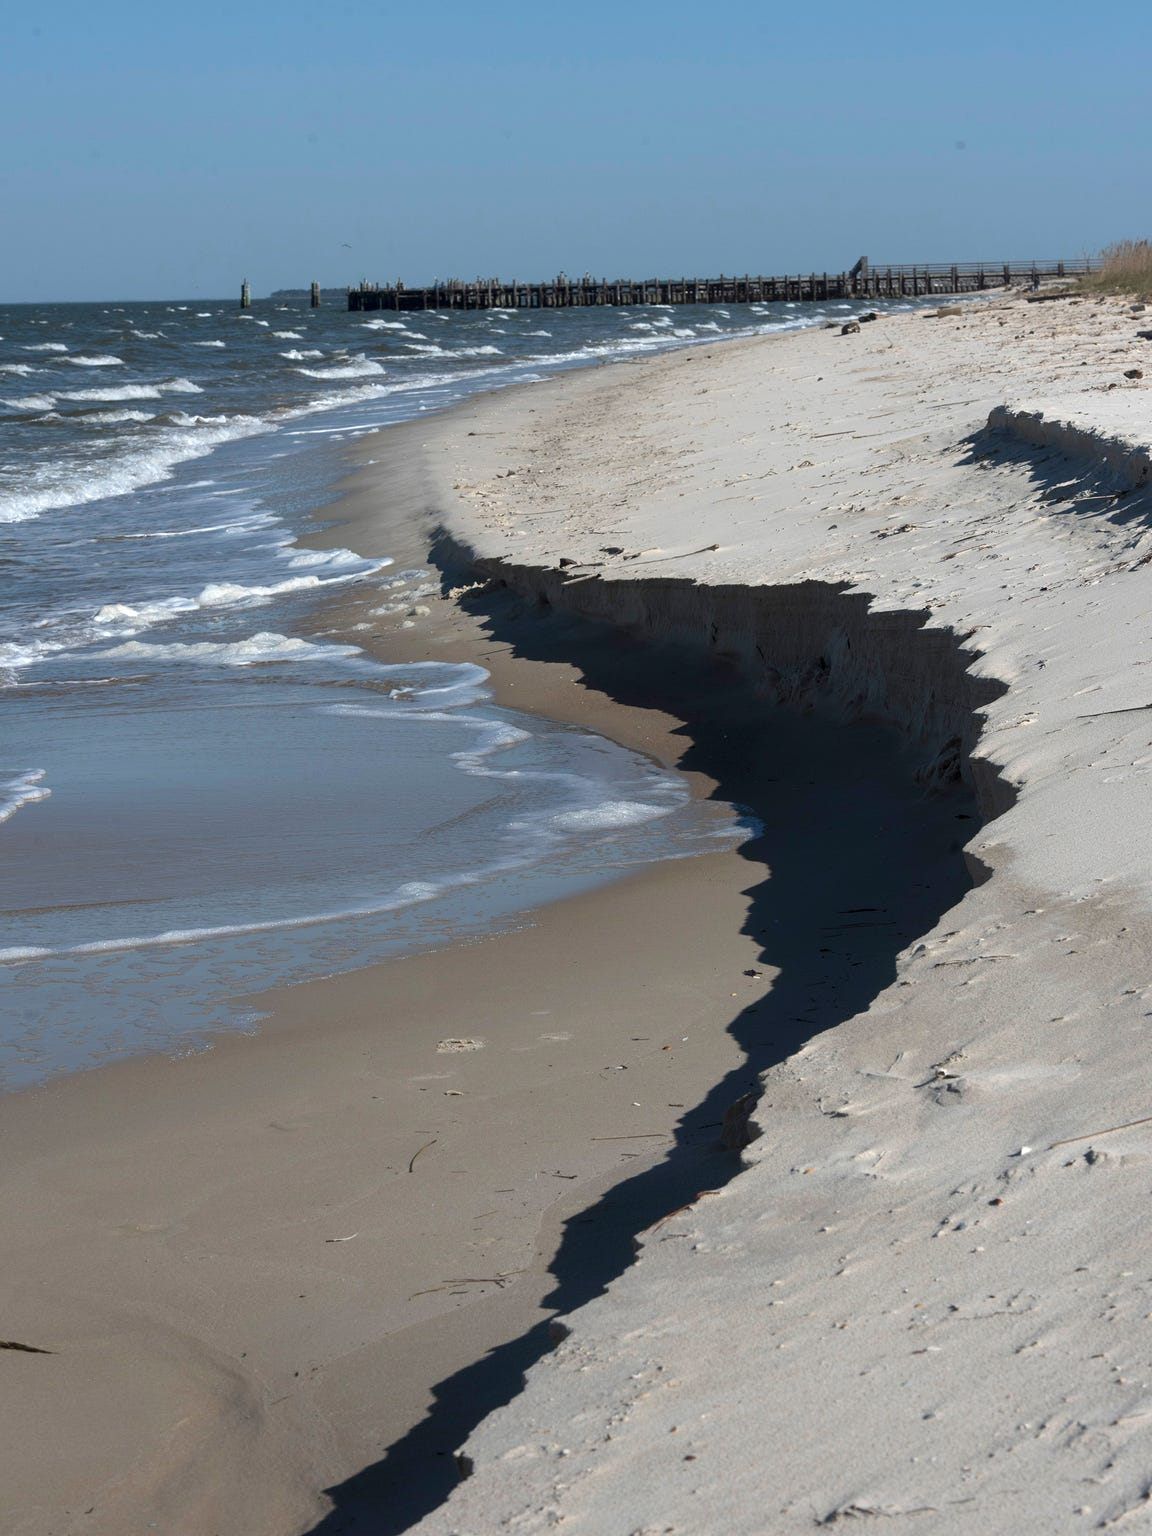 Waves and winds have eroded the beaches of the Fort